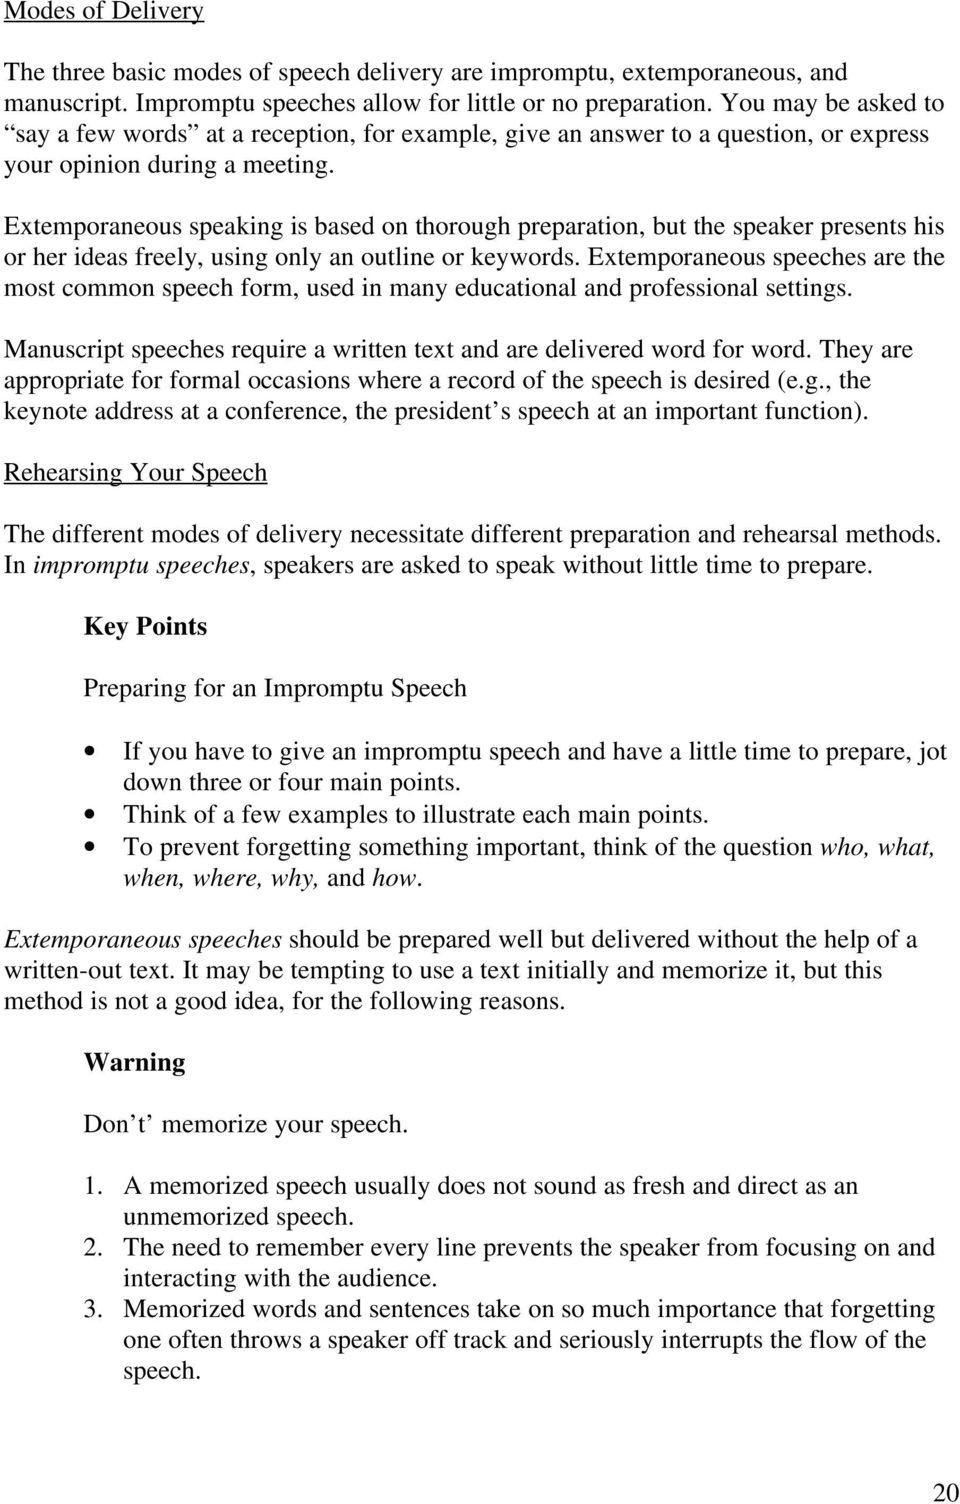 Extemporaneous speaking is based on thorough preparation, but the speaker presents his or her ideas freely, using only an outline or keywords.